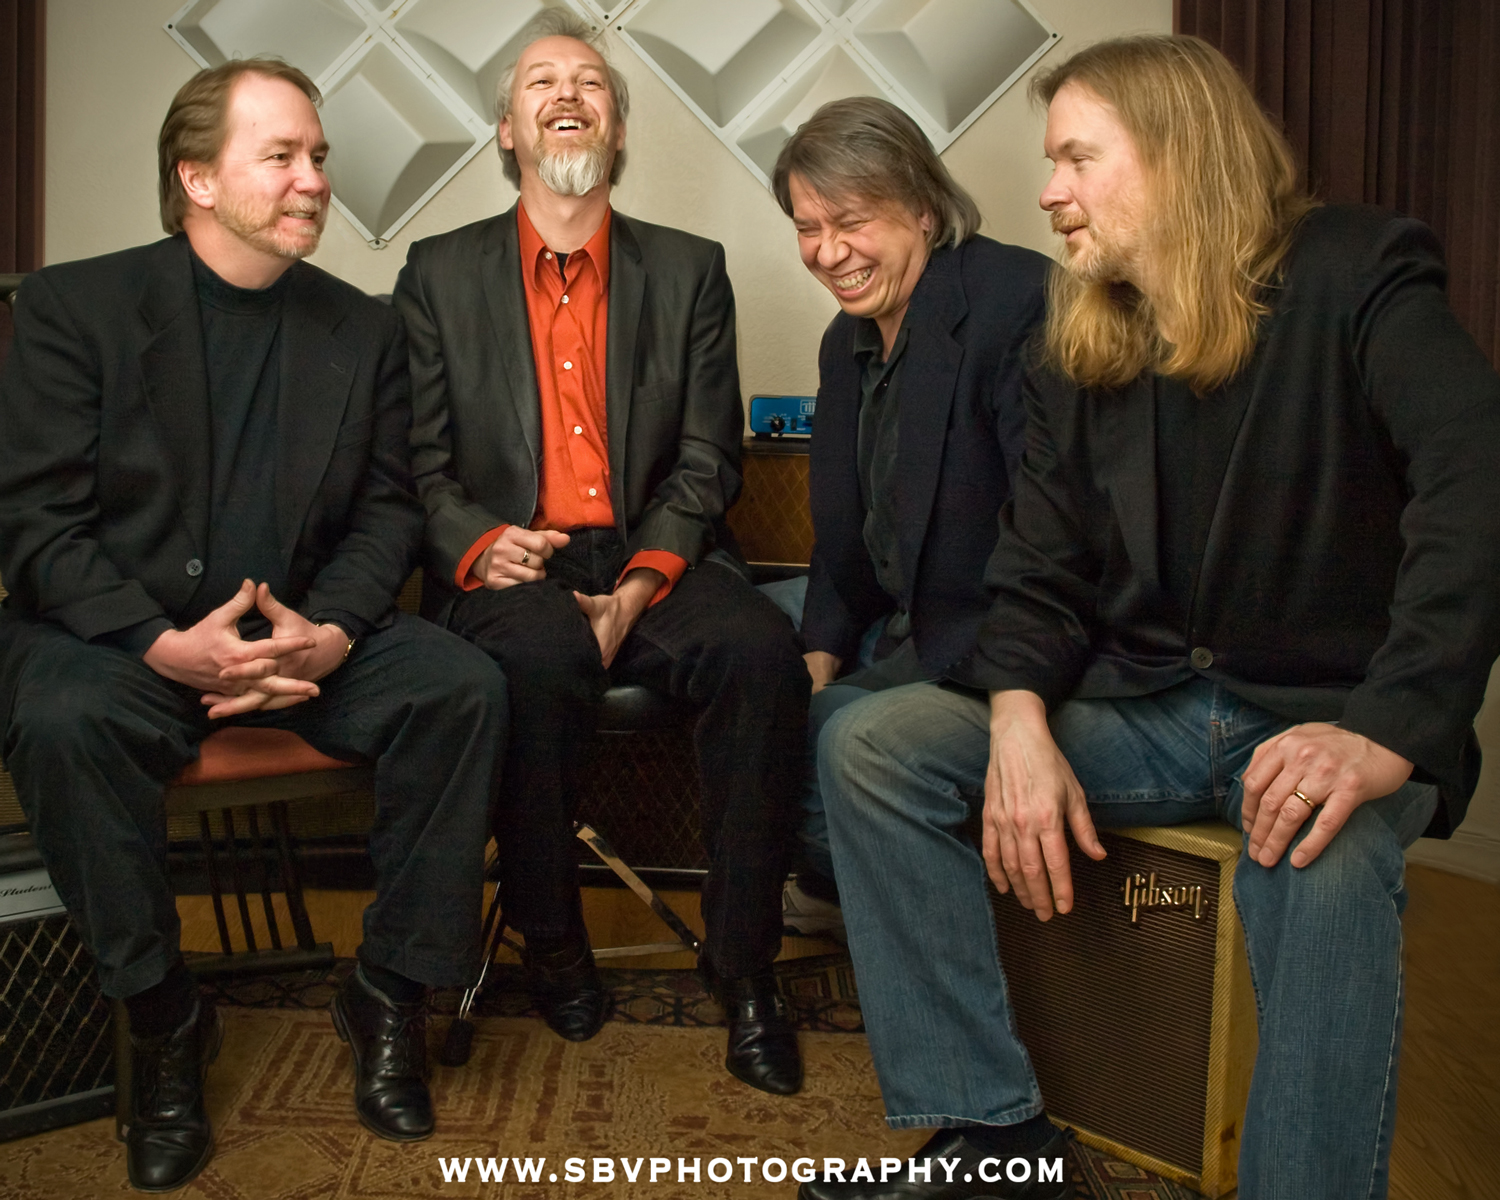 Northwest Indiana rock band Nomad Planets jokes around at an Hammond music studio for their publicity photo session.